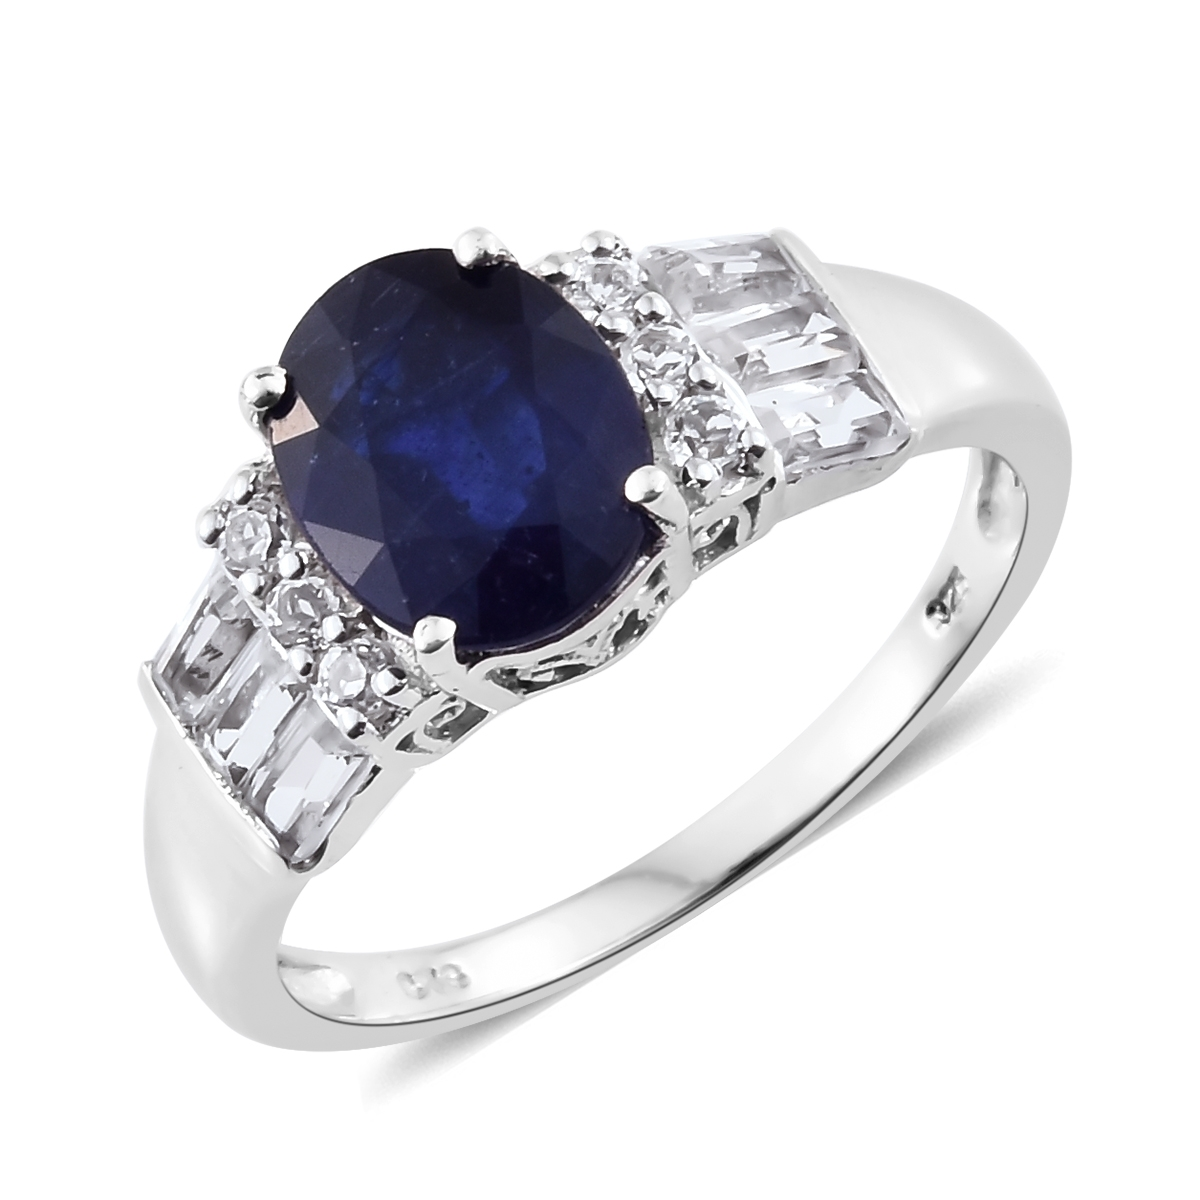 Sapphire, White Topaz Platinum Plated Silver Ring 4.91 cttw. by Shop LC